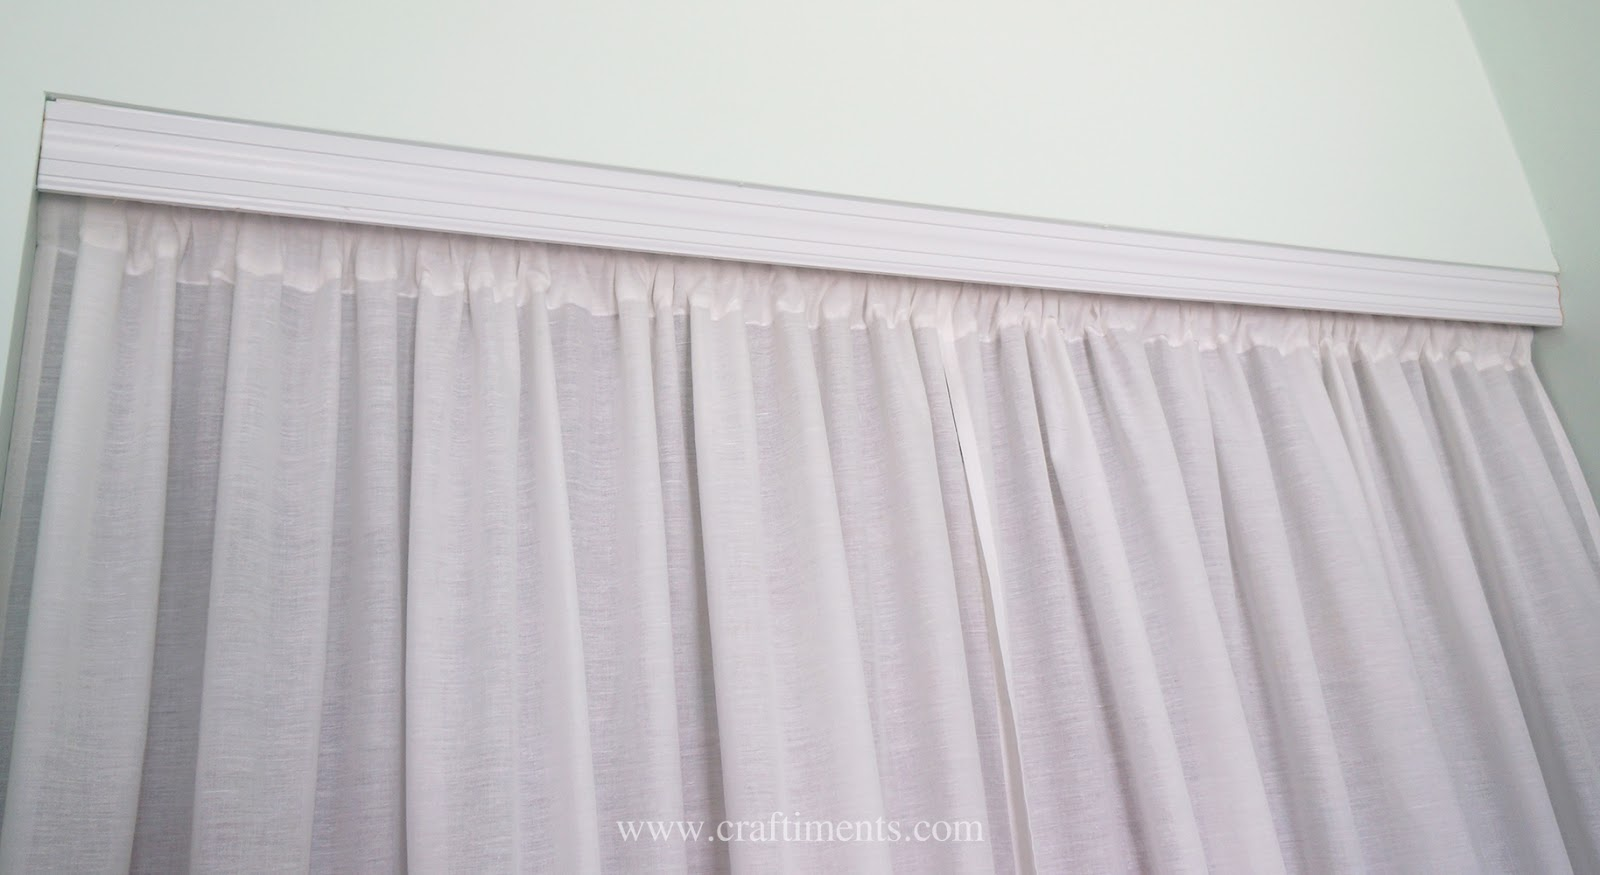 A casing is sewn into twin bed sheets to create curtains that replace sliding closet doors.